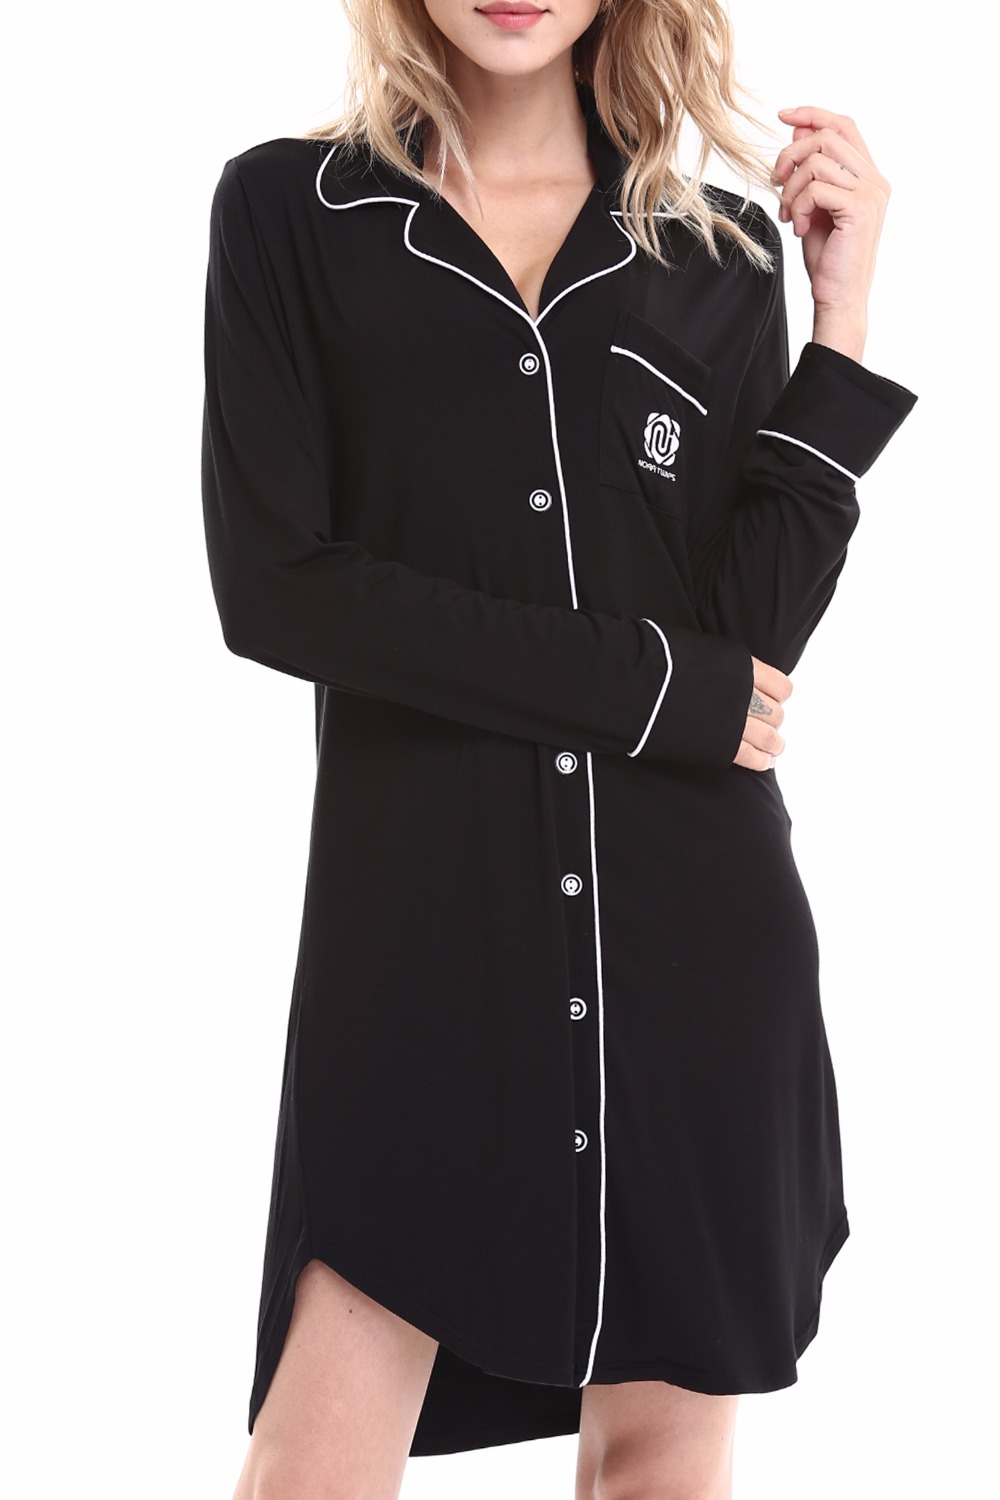 Online Black Nightgown China